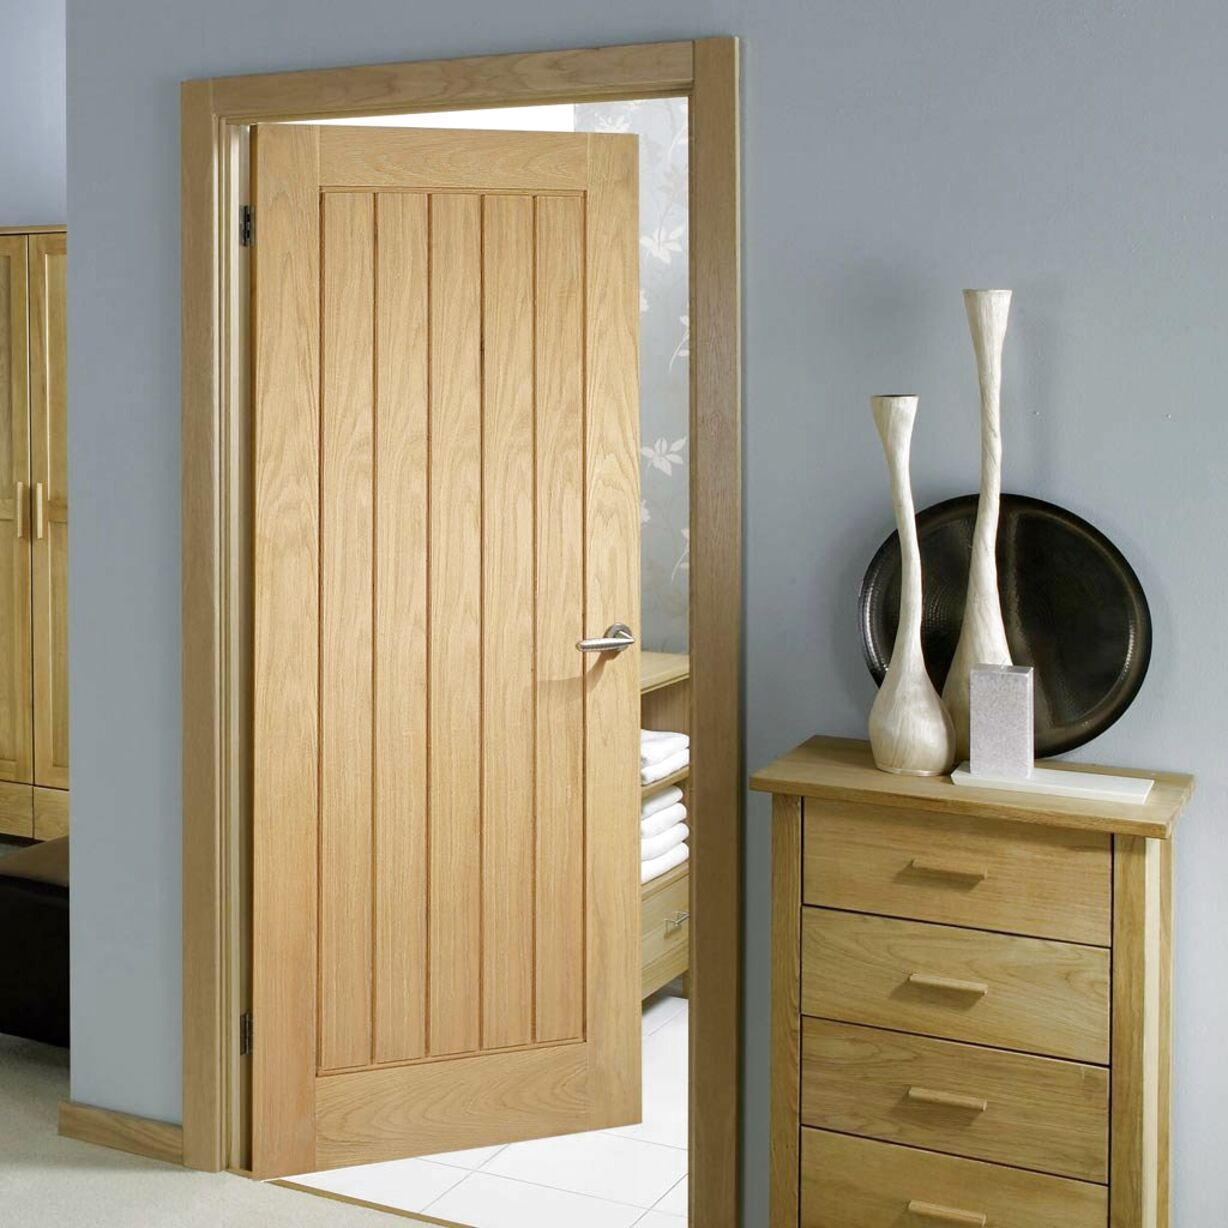 oak fire door for sale